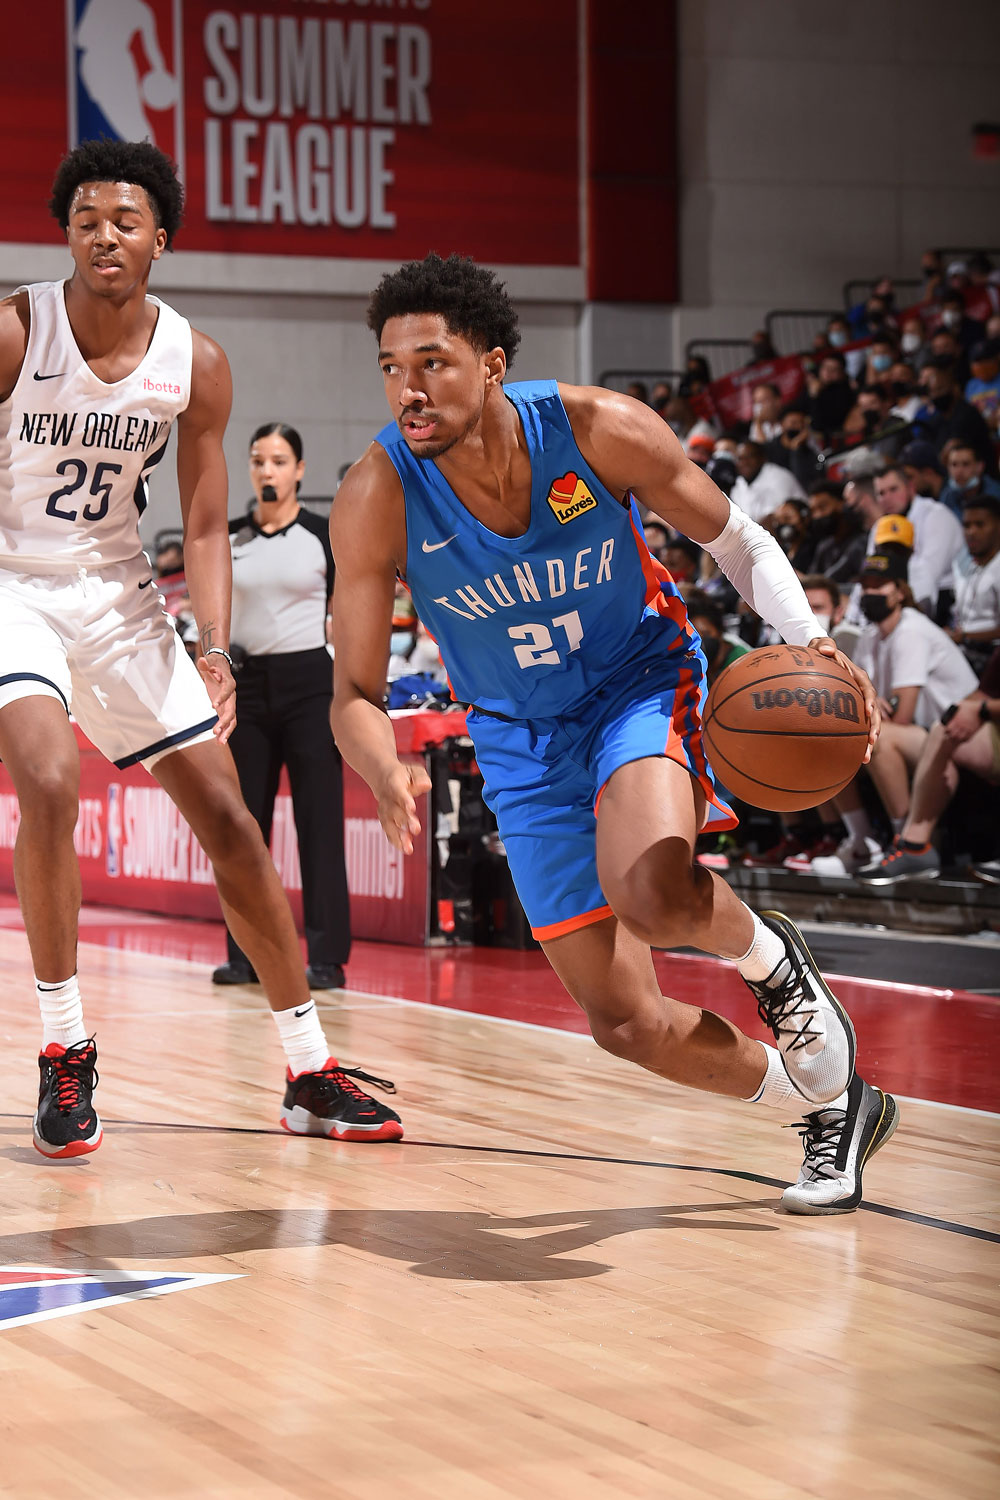 Action shots from Wednesday's Thunder-Pelicans clash in Summer League action.(Photo by David Dow | NBAE via Getty Images)